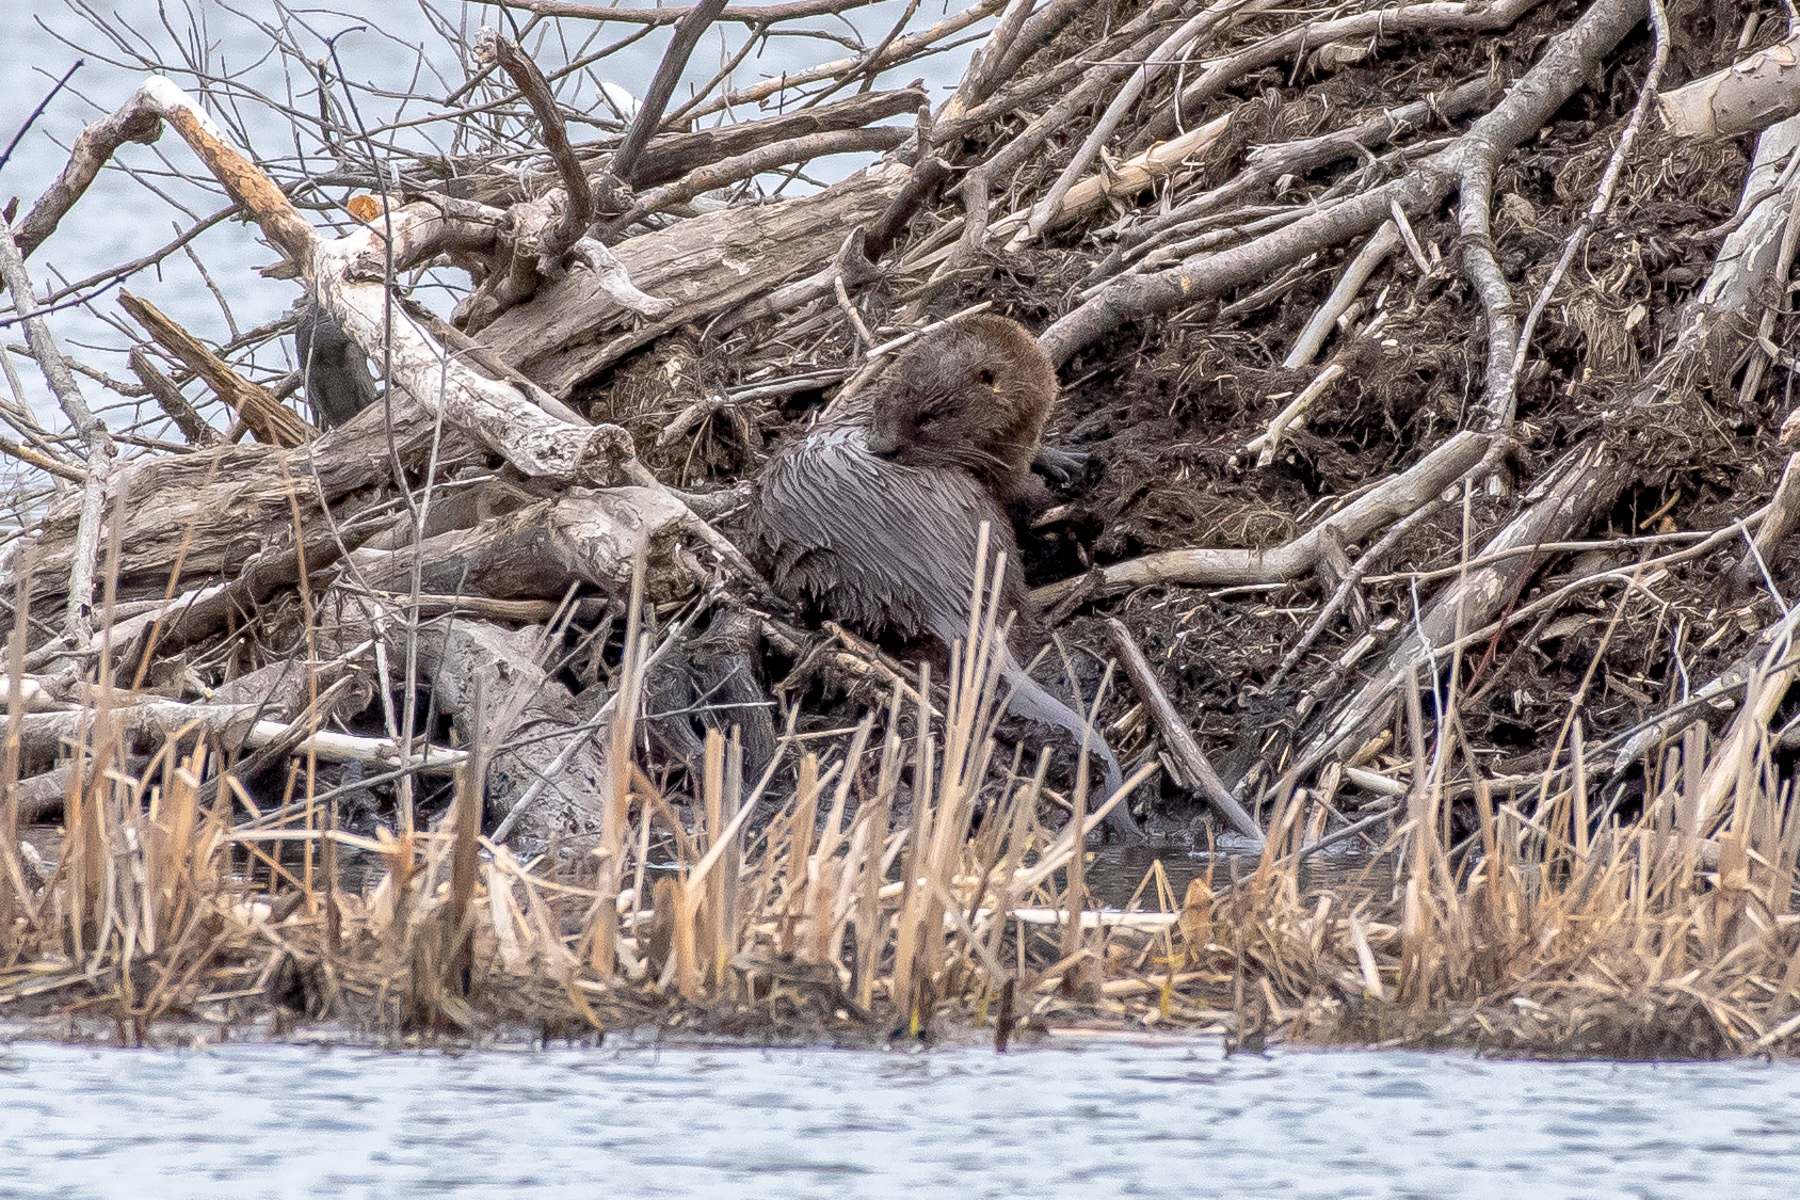 Here is the otter relaxing on a beaver lodge after feeding on fish all morning.  I love these guys!!   3/23/16